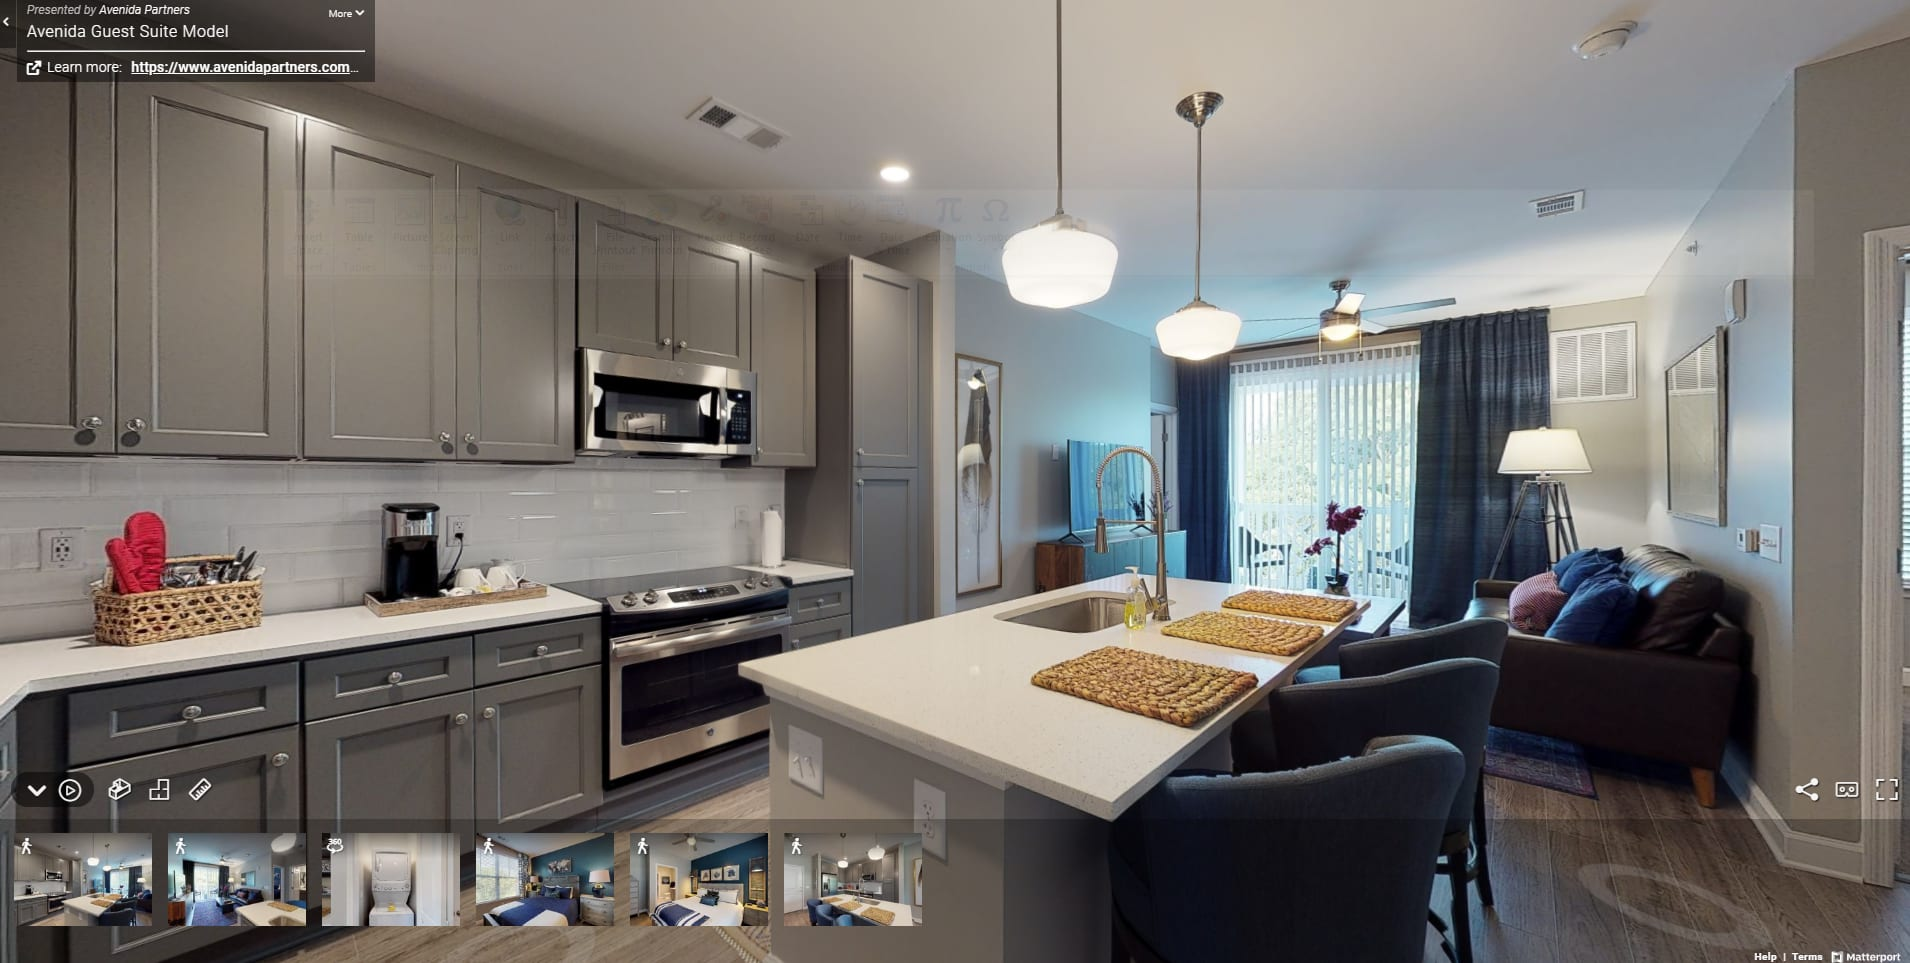 Kitchen Island and Stainless Steel Appliances at Avenida Cool Springs Active Senior Living in Franklin, TN